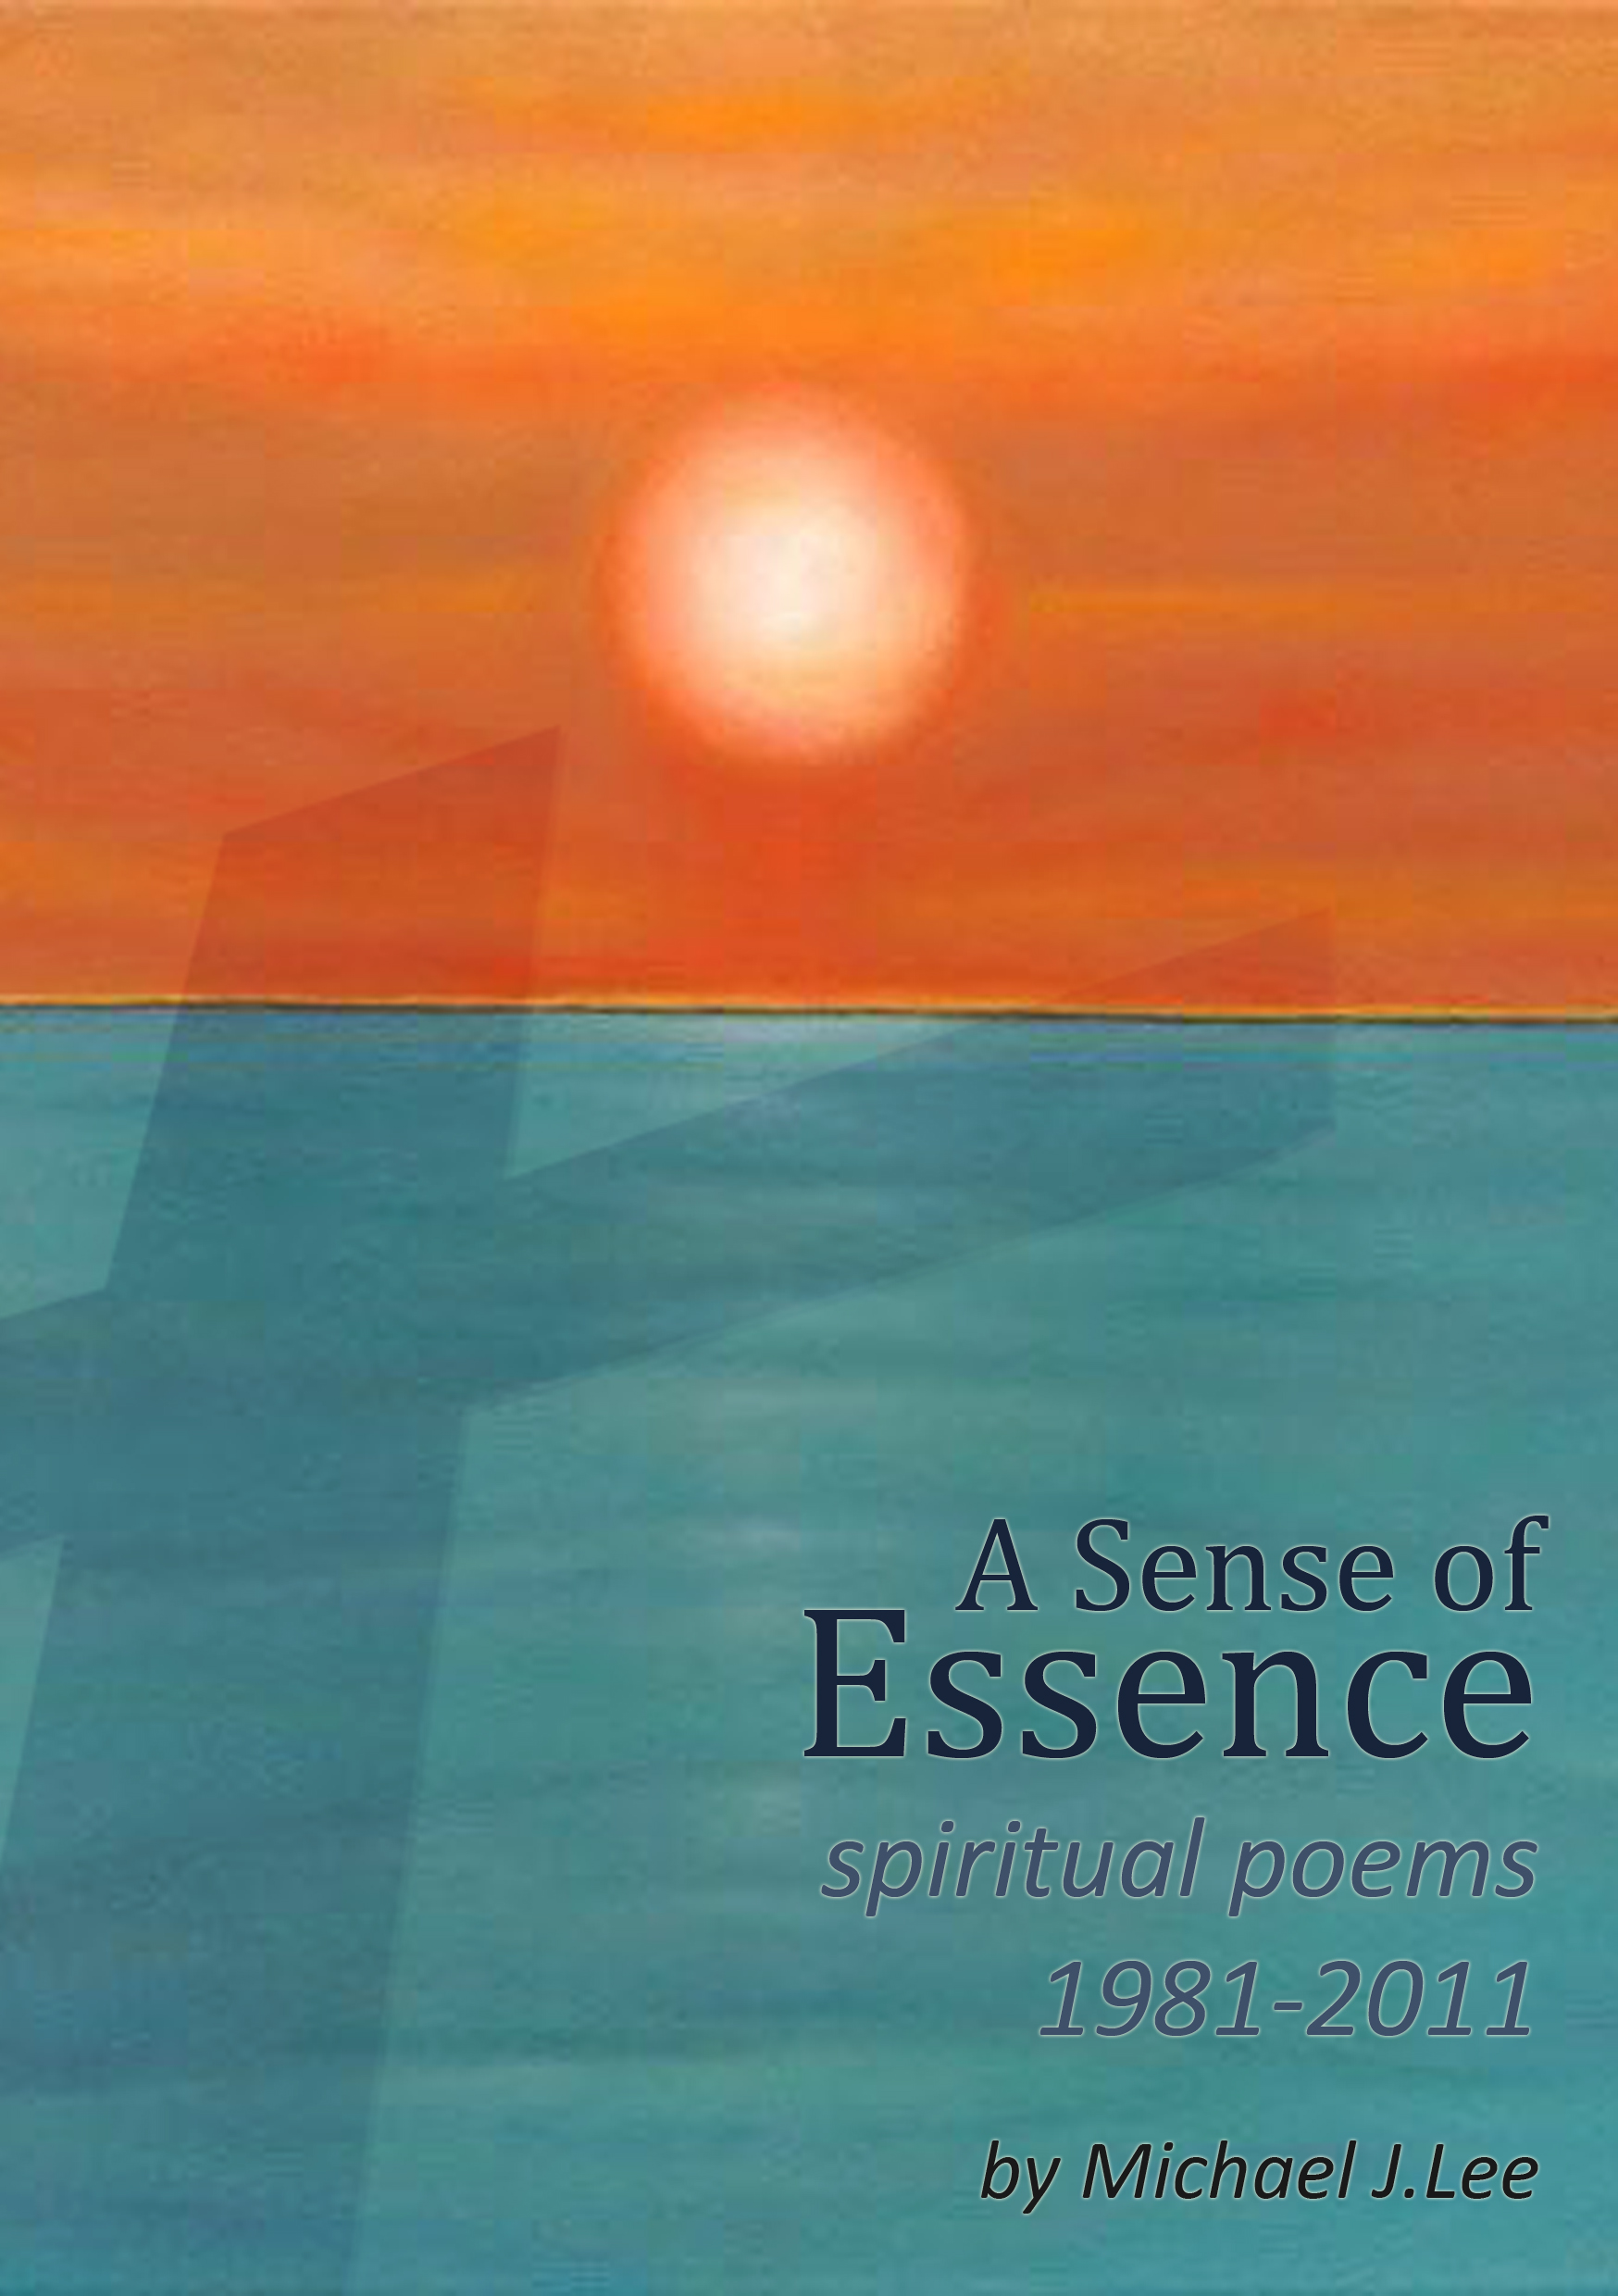 A Sense Of Essence, an Ebook by Michael Lee